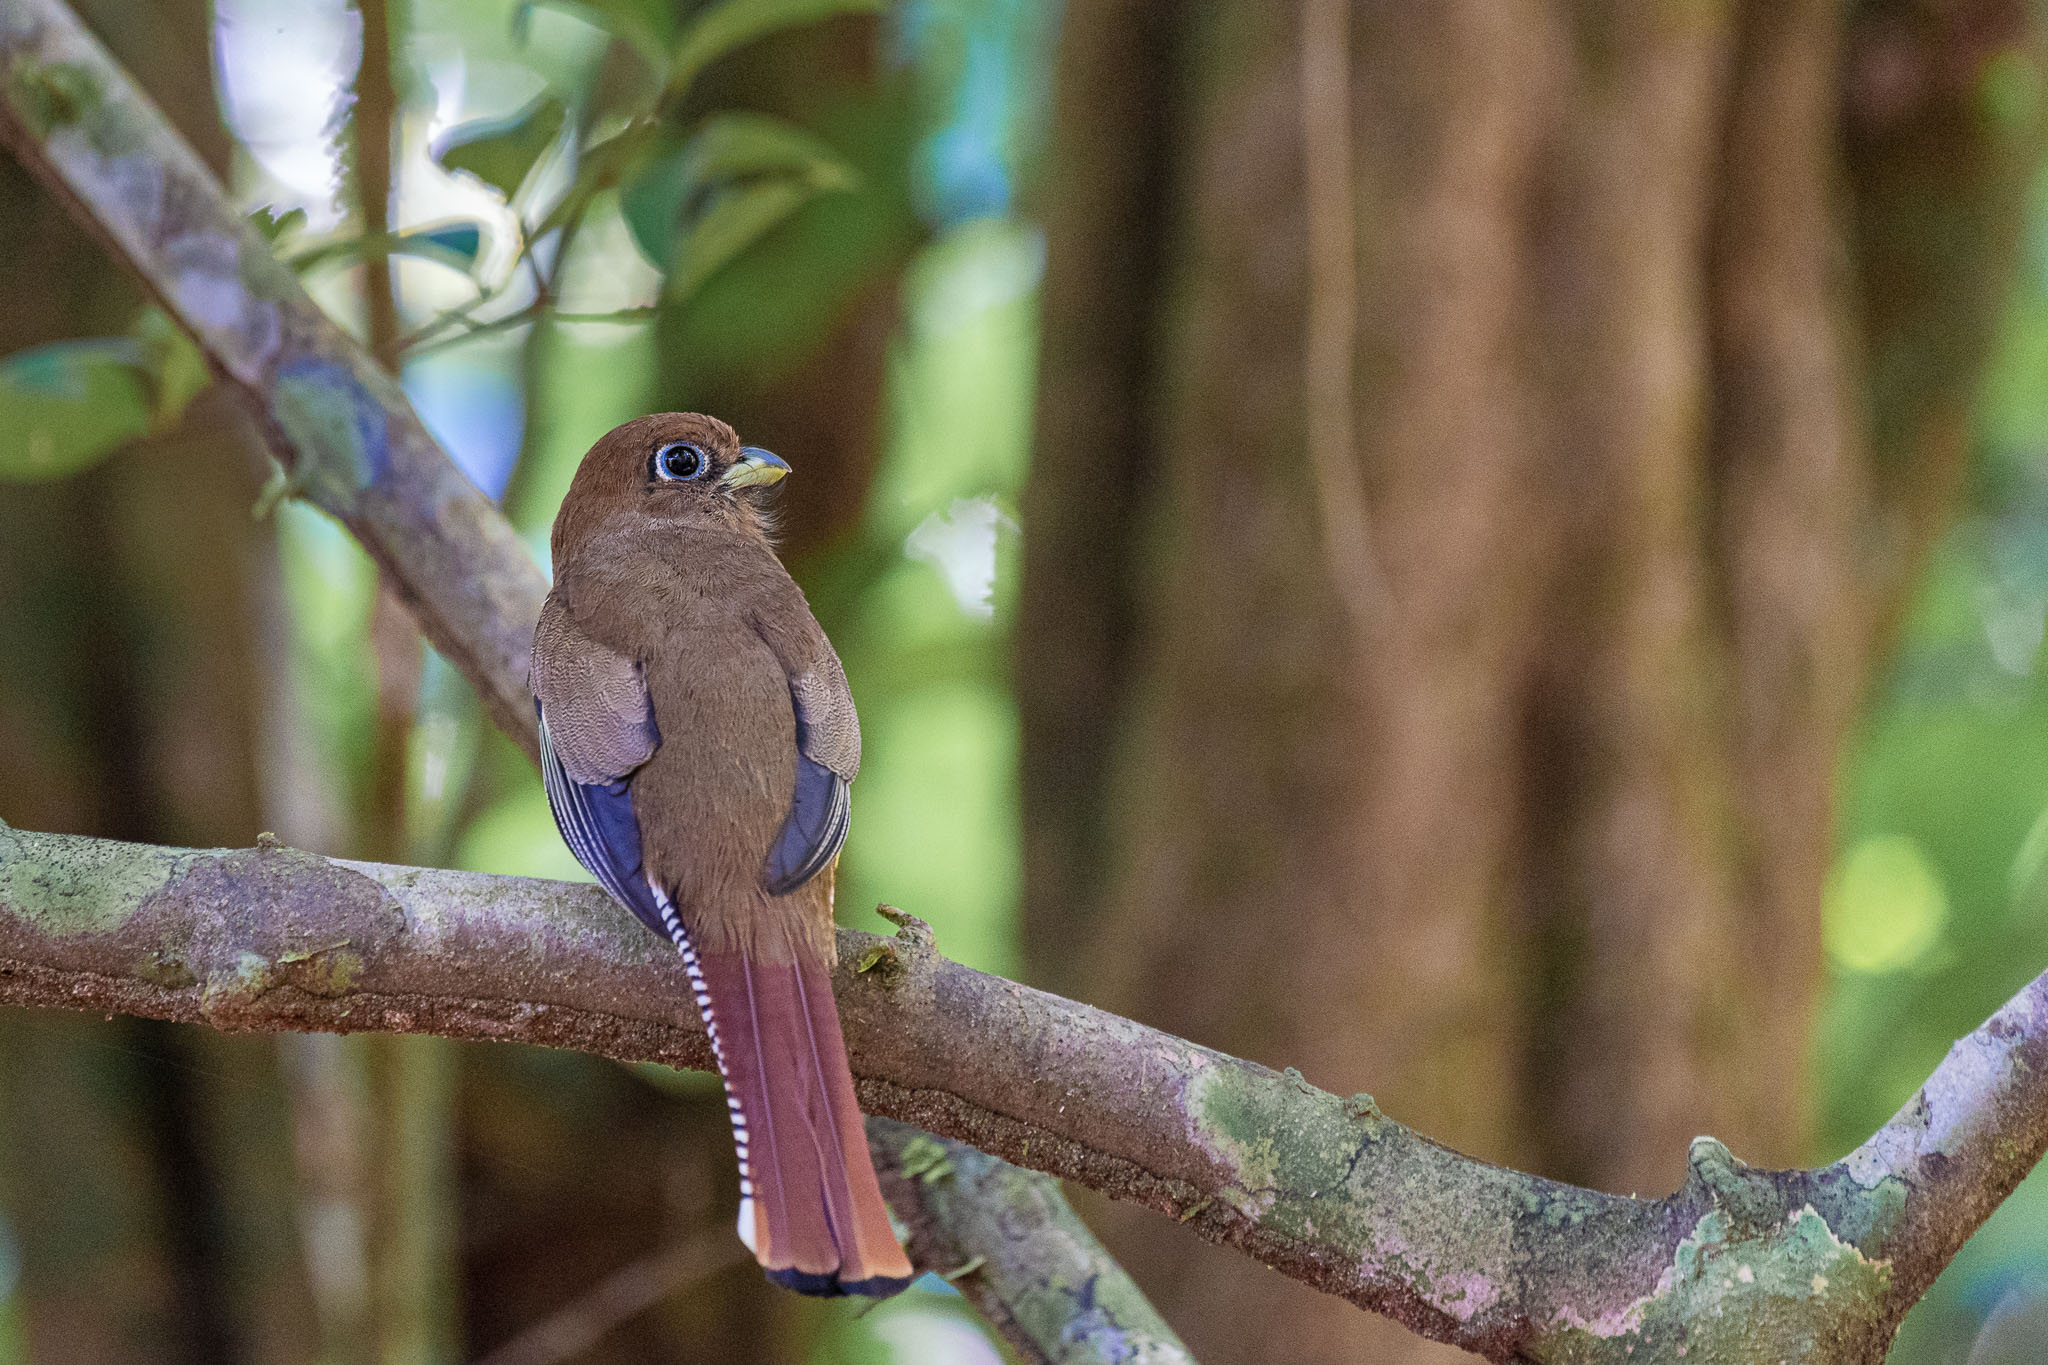 Costa Rica is a bird watcher's paradise. There are so many species and many of them are endemic. I just like to photograph the pretty ones.